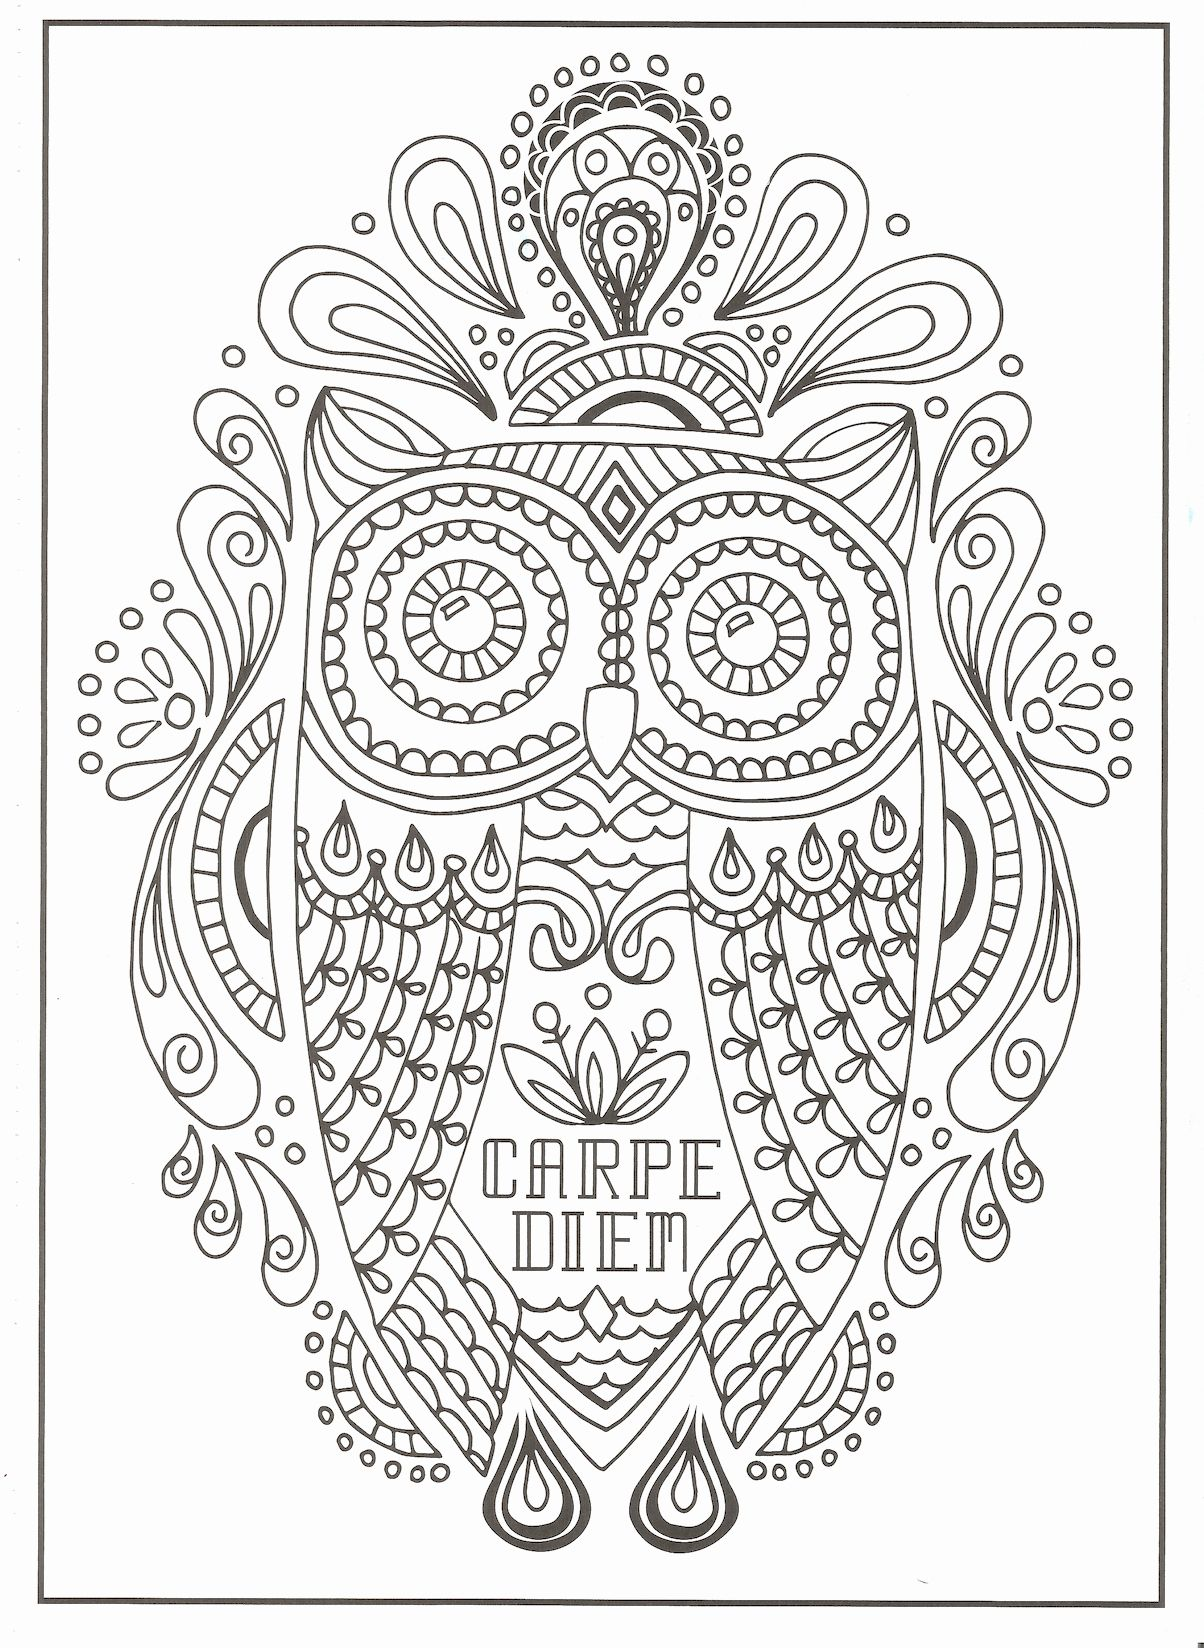 Timeless Creations Coloring Book Fresh Timeless Creations Creative Quotes Coloring Page Carpe Die Coloring Books Creation Coloring Pages Mandala Coloring Books